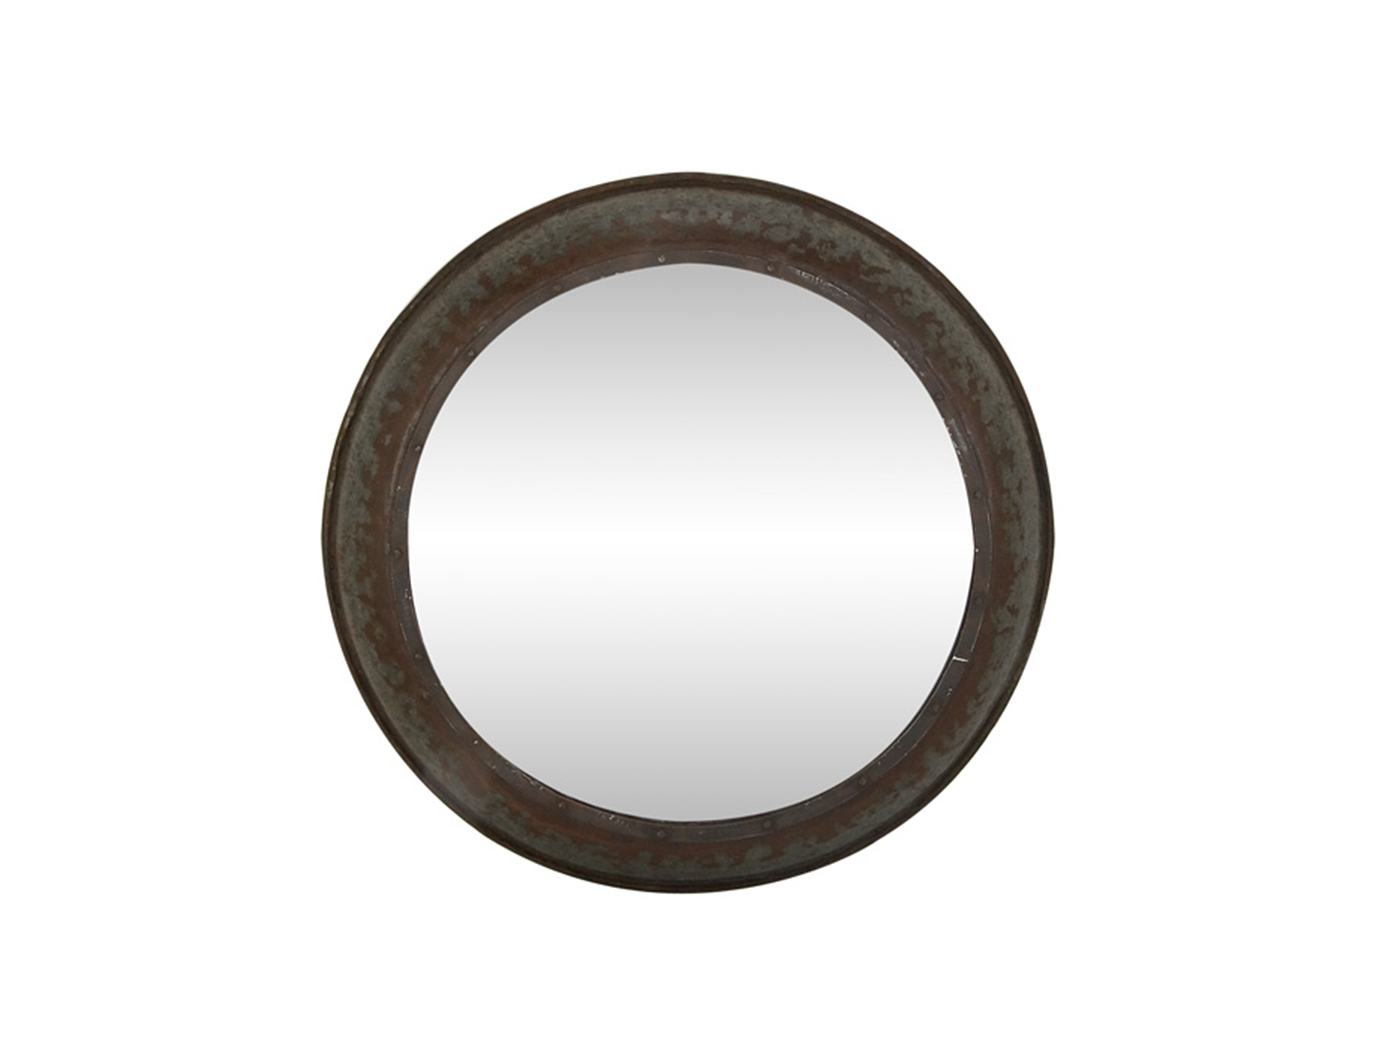 Antique Bronze Metal Round Wall Mirror 35""